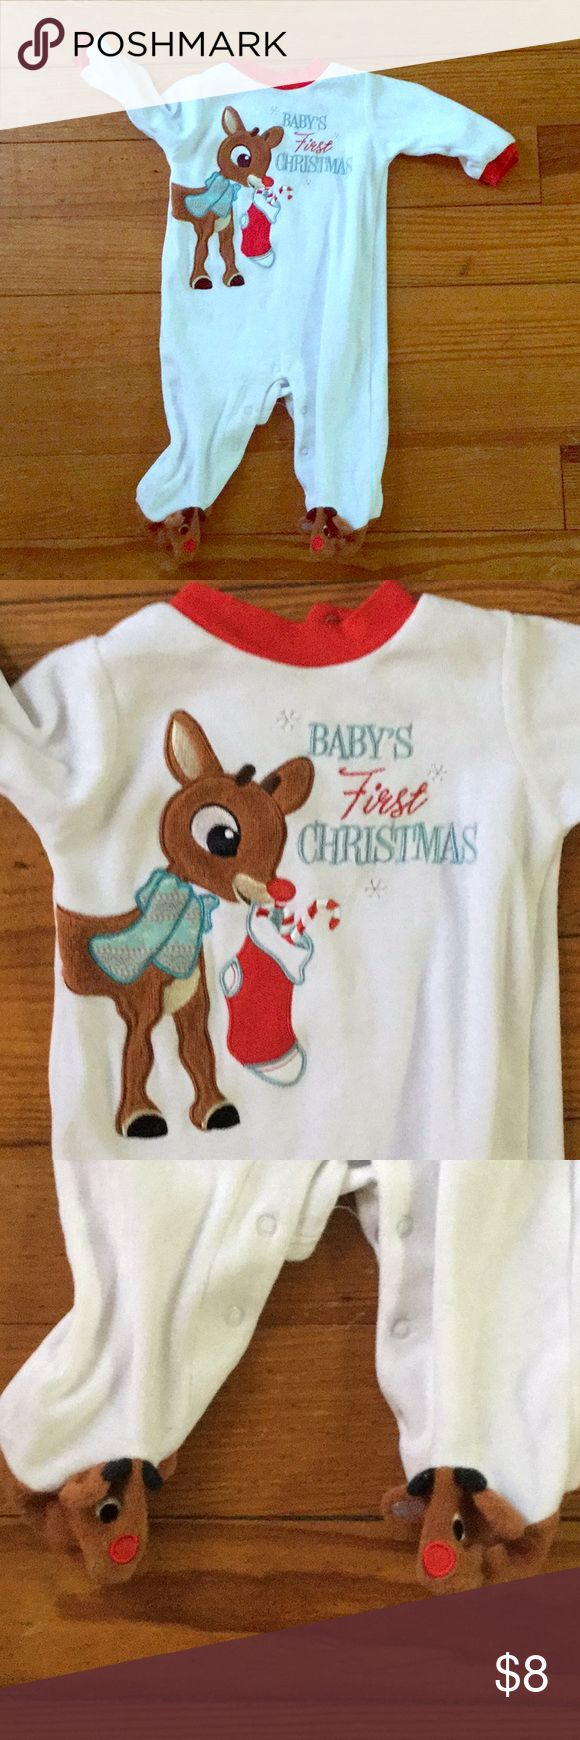 Baby's first Christmas 🎄 footie pajamas Like new baby's first Christmas footie pjs with reindeer feet. Size 6 Months . Order in time for Christmas 🎄 One Pieces Footies